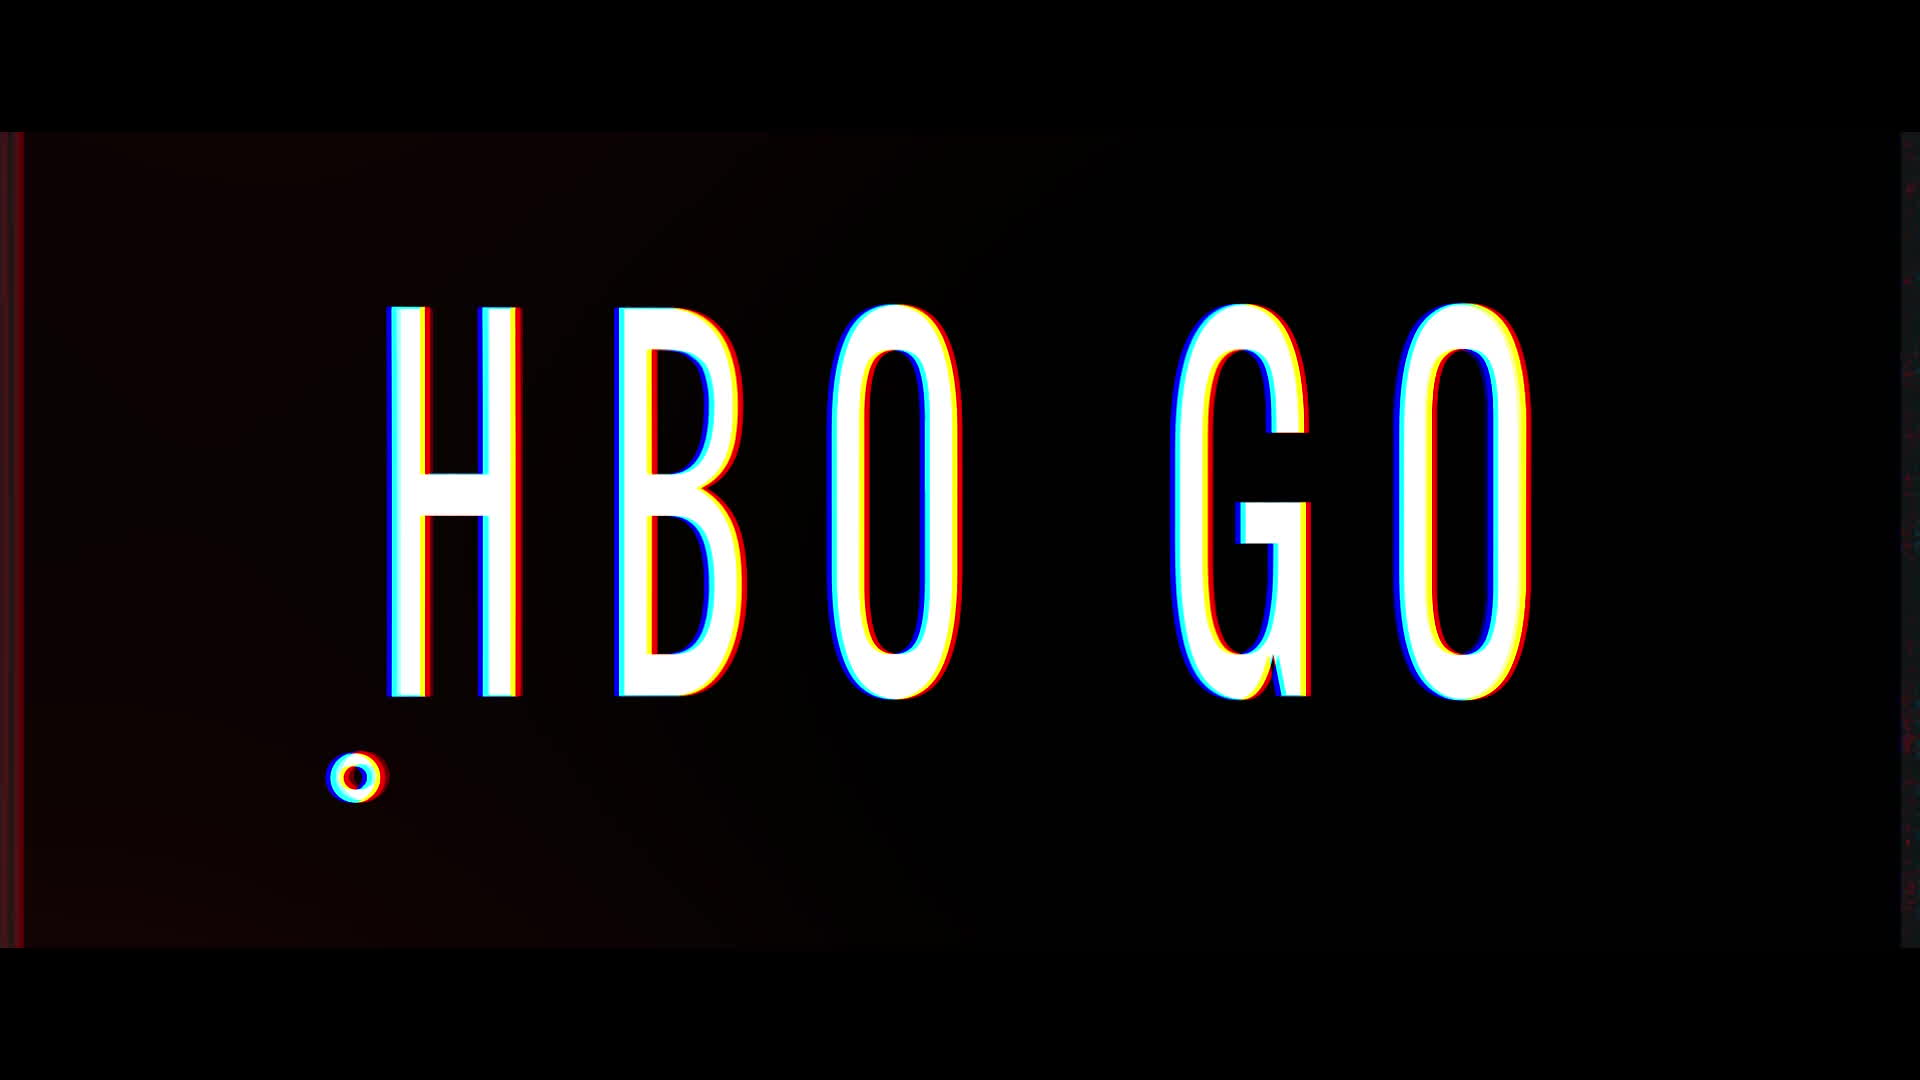 Is It Safe To Share The Login Credentials Of HBO Go Account?